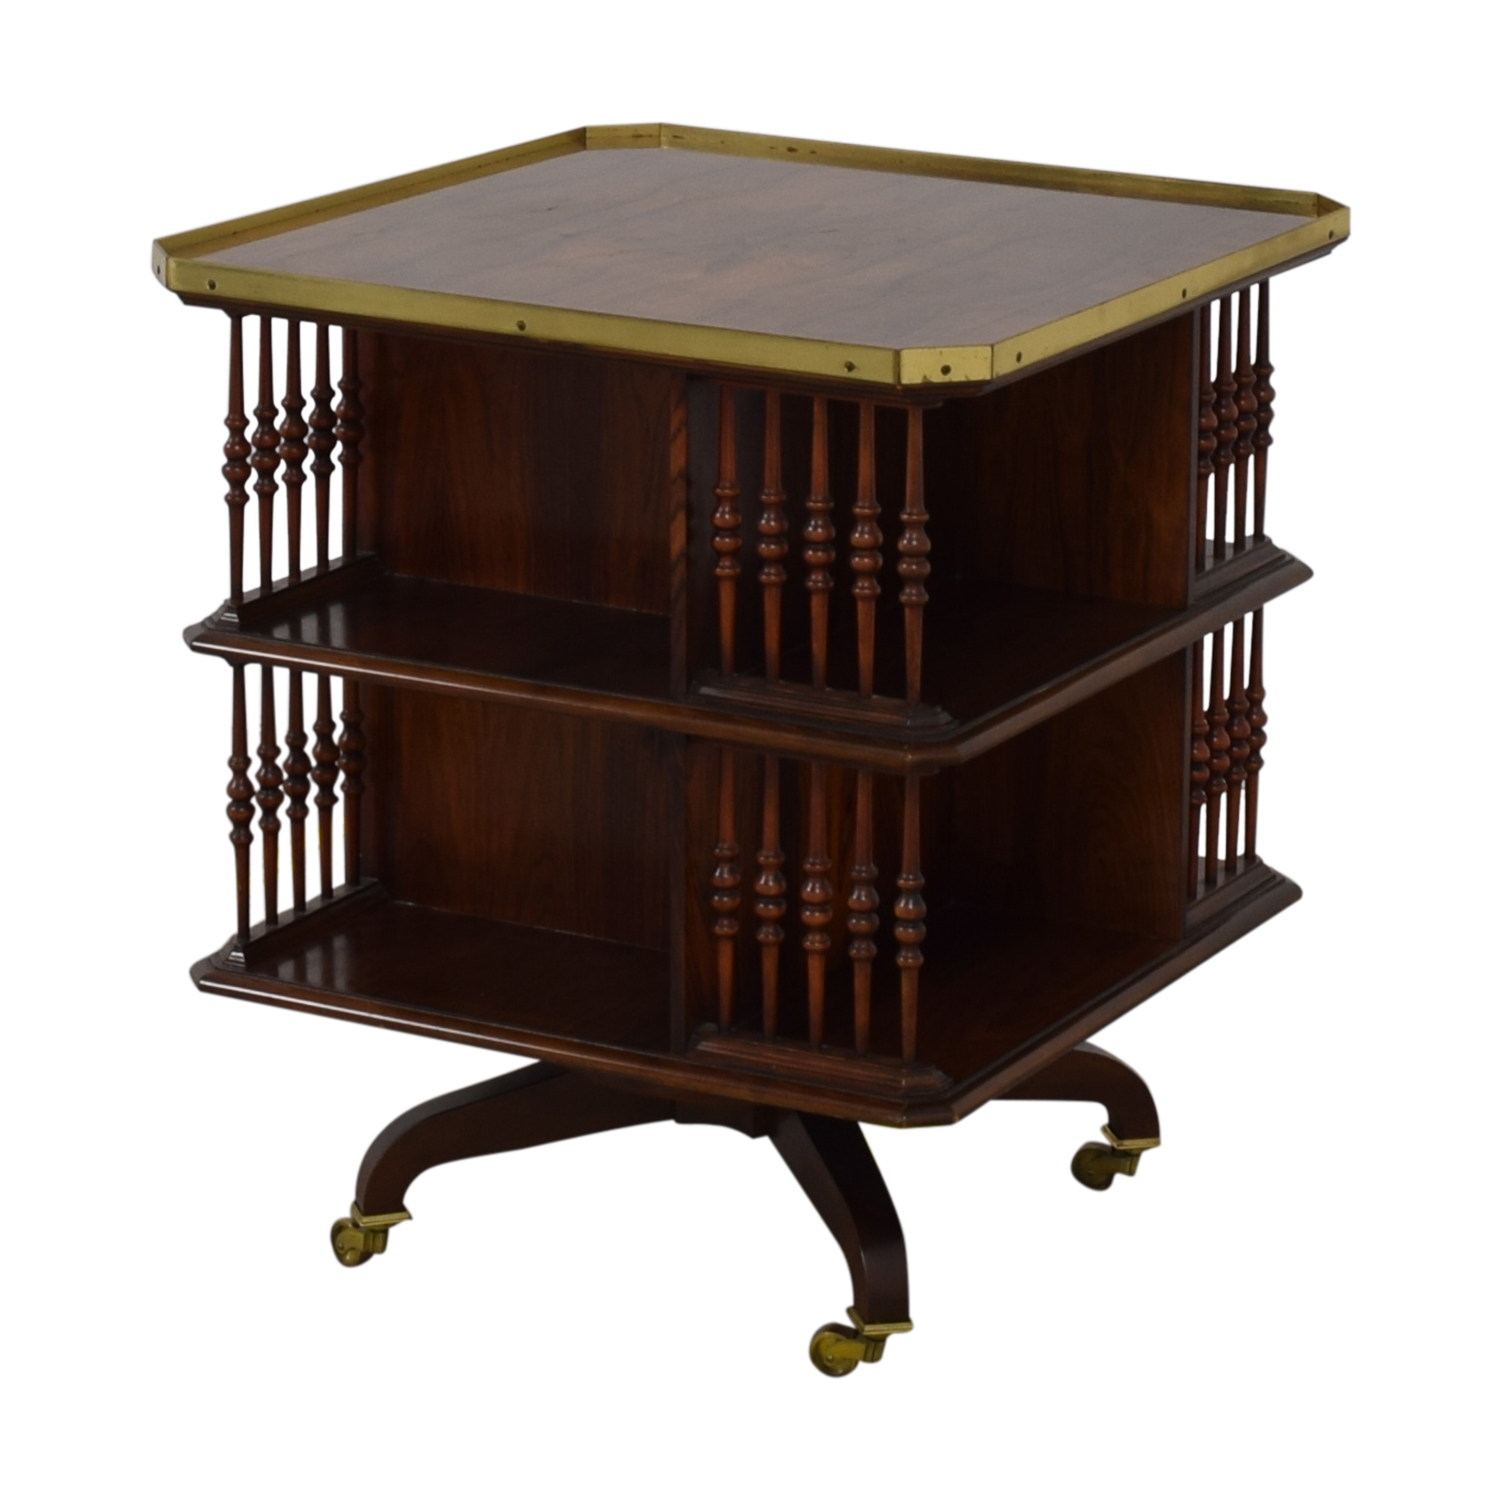 Baker Furniture Baker Furniture Swiveling Library Table coupon